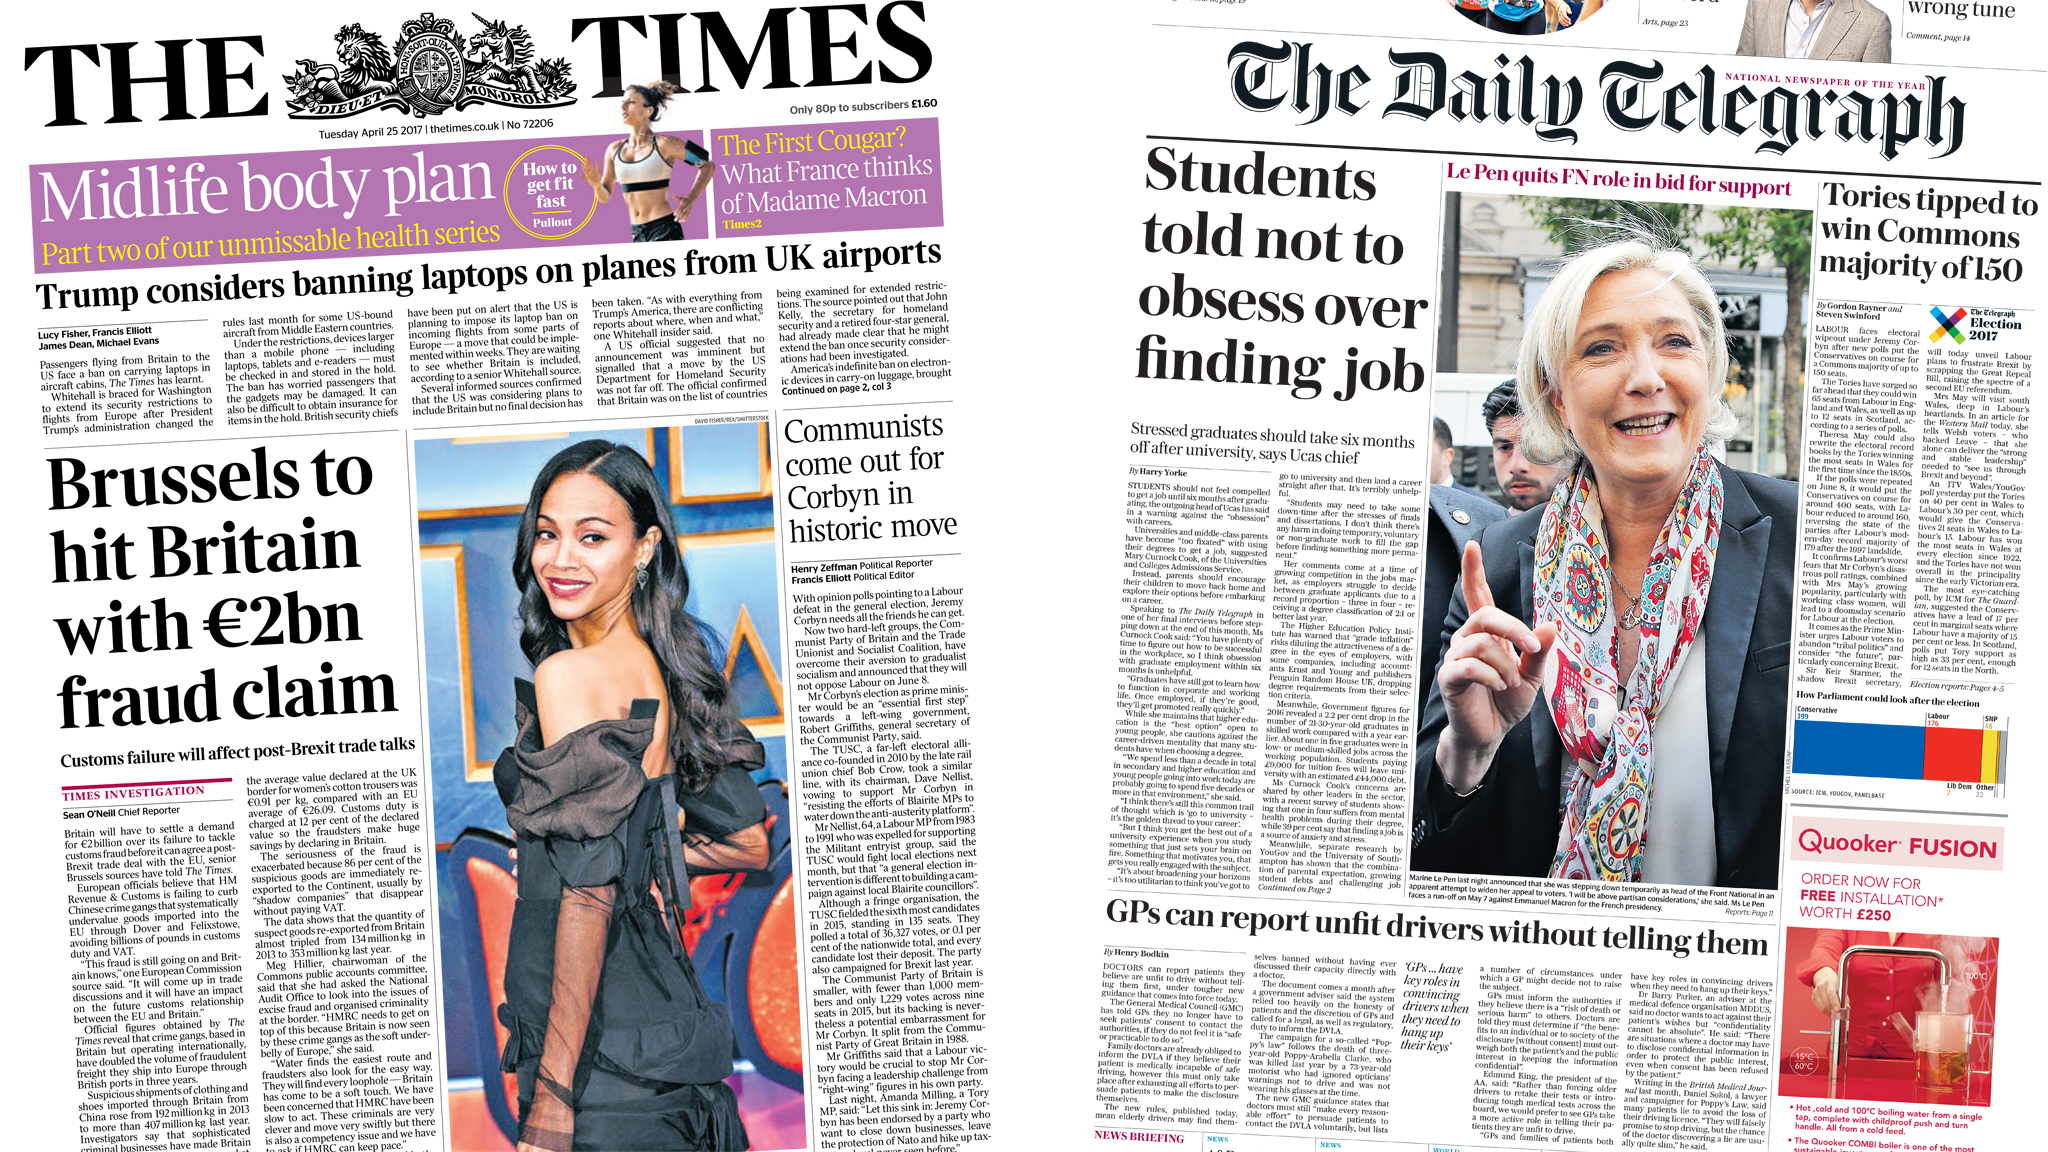 The Papers: Job-obsessed students and 2bn euros bill